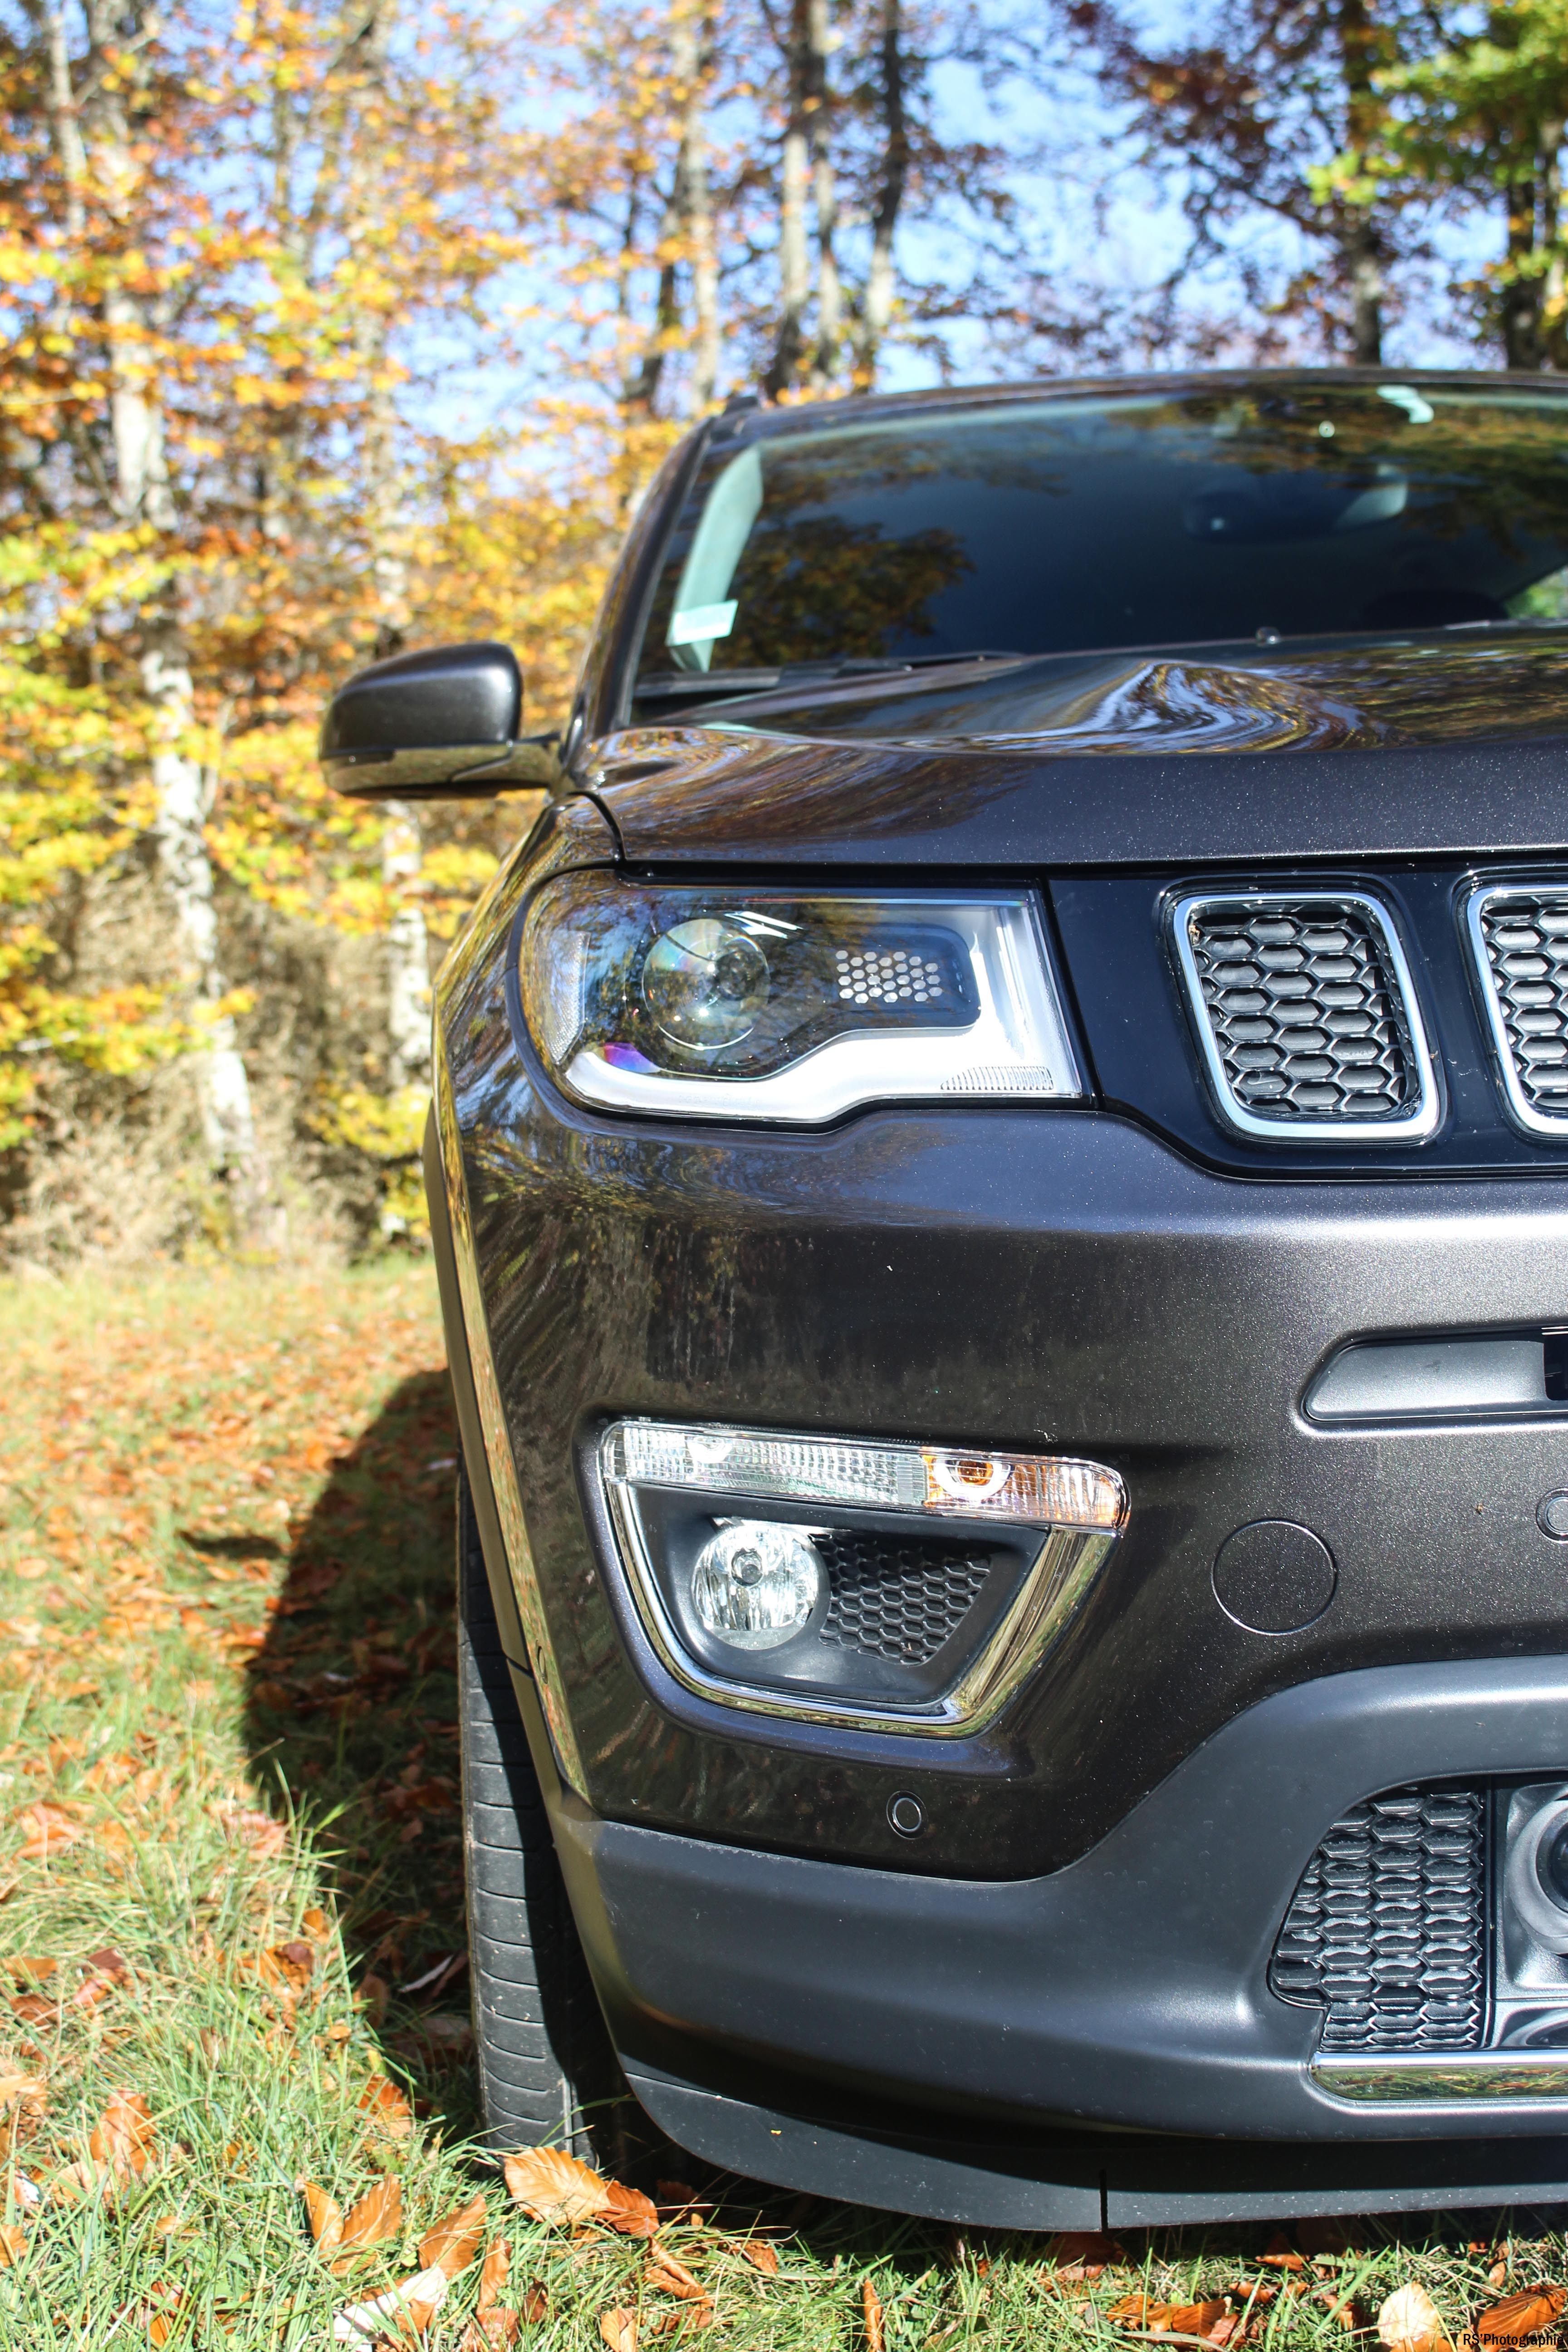 jeepcompass31-jeep-compass-avant-front-Arnaud Demasier-RSPhotographie